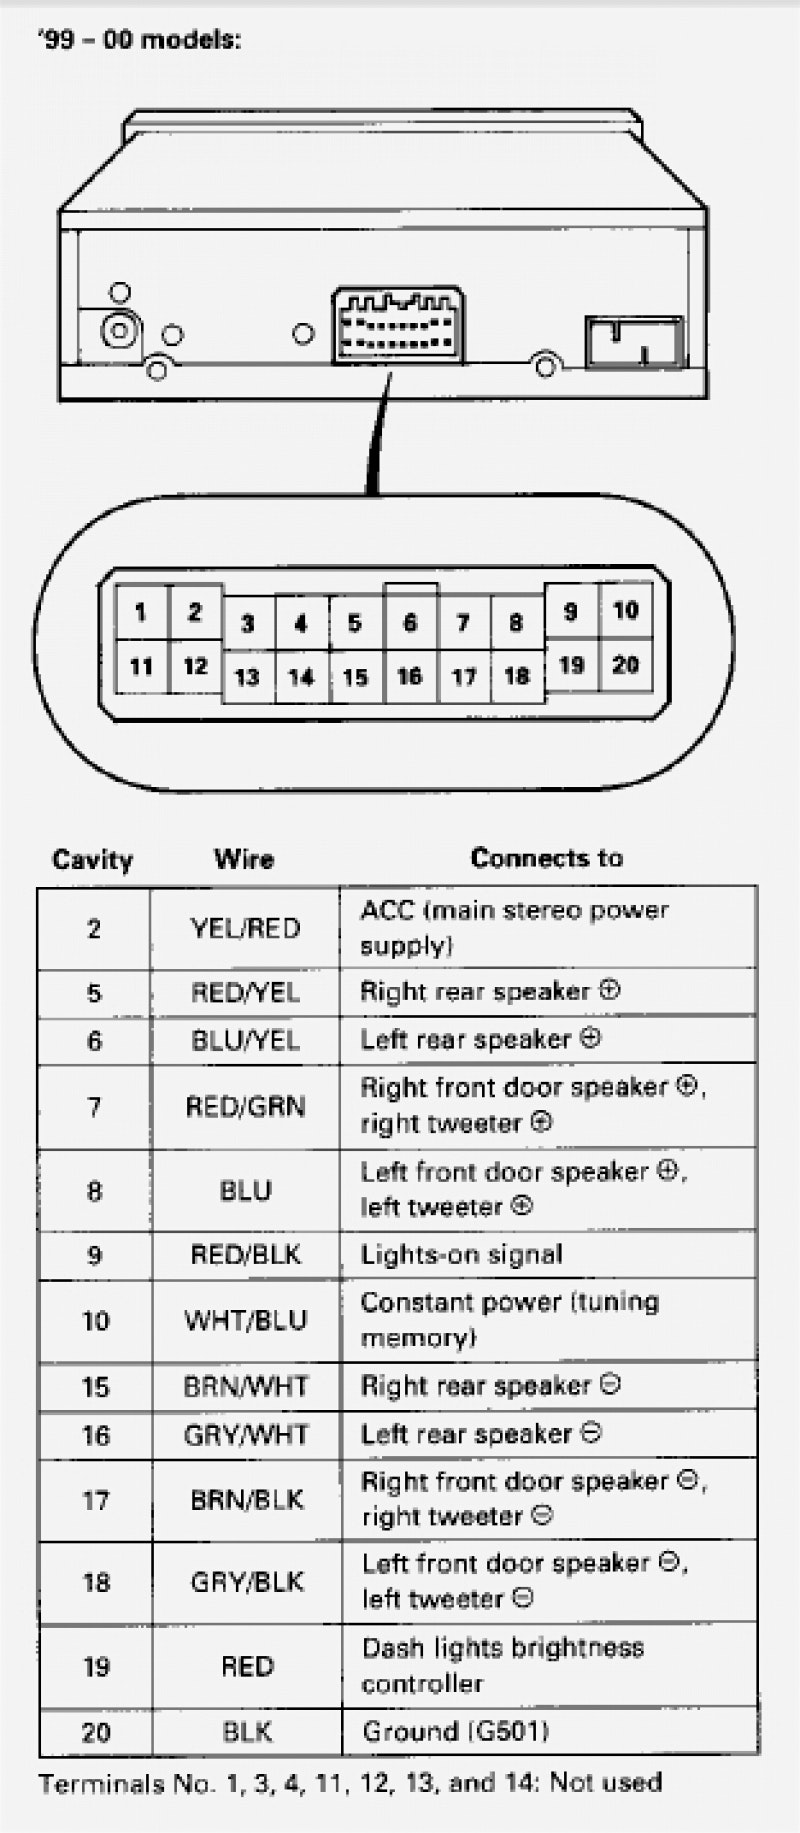 Jvc Kd R330 Car Stereo Wiring Diagram